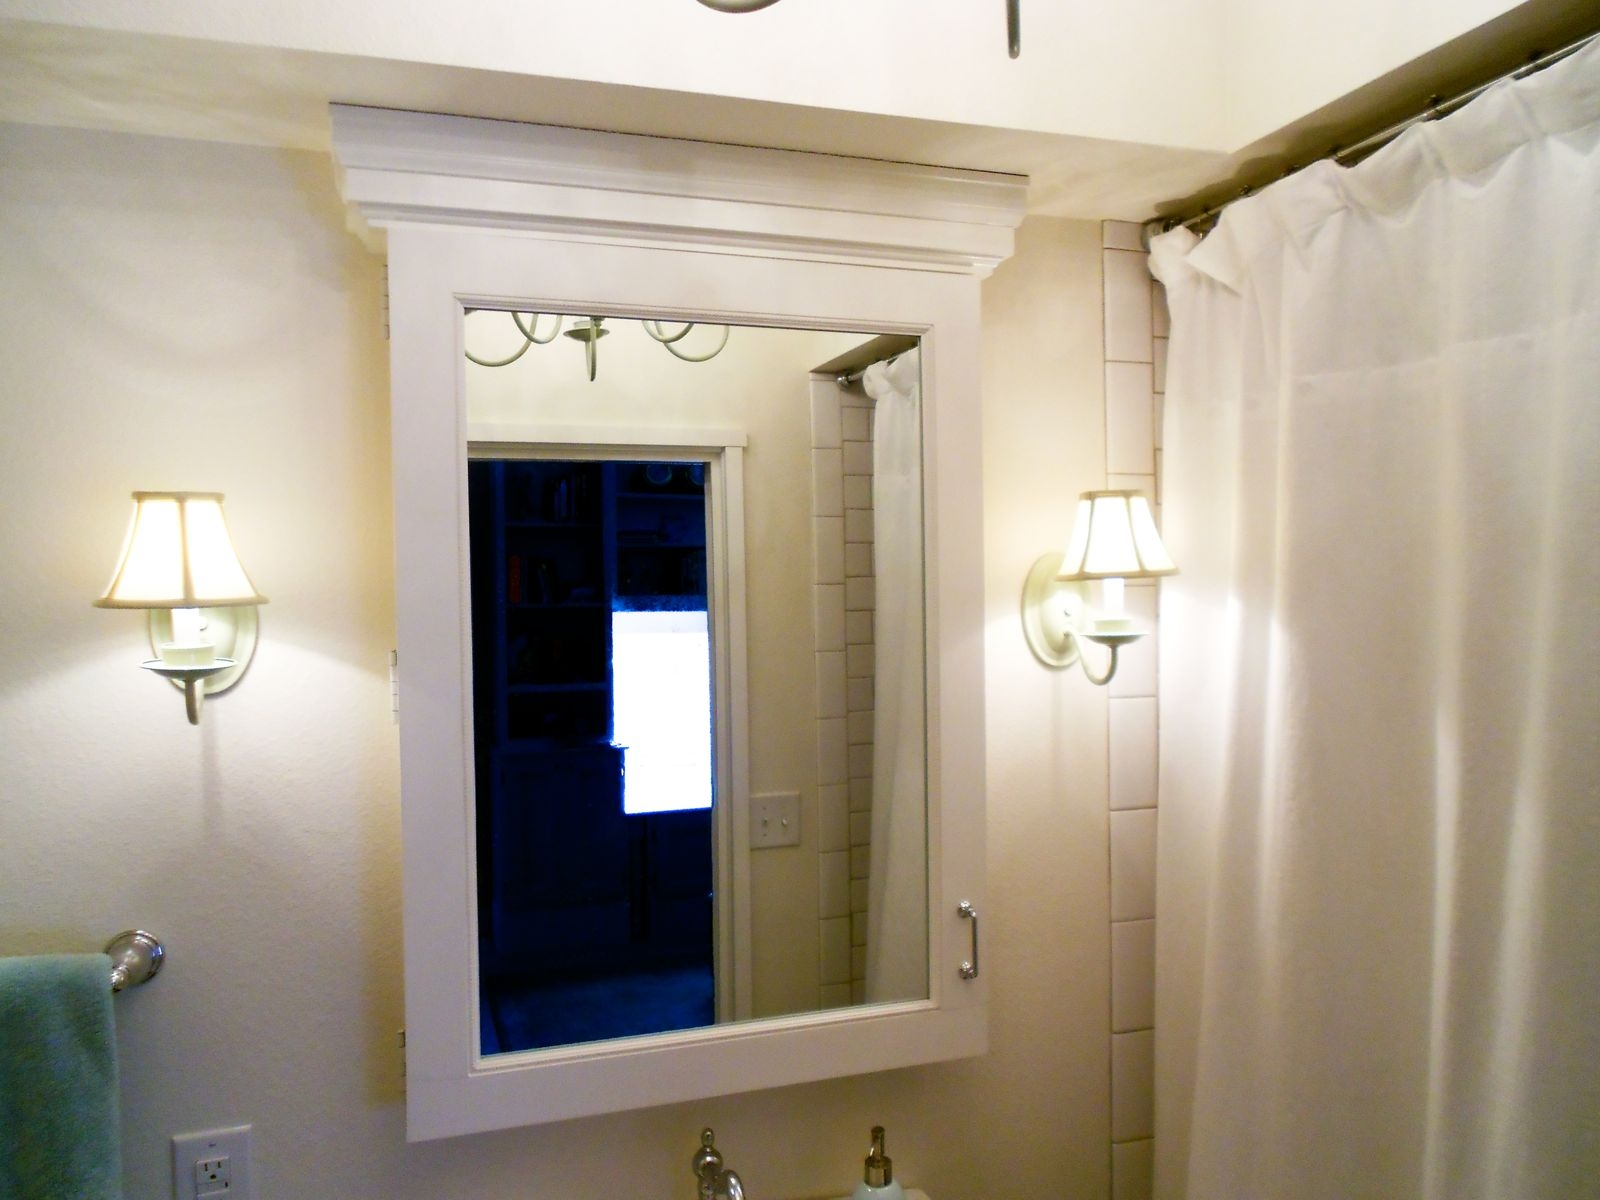 Bathroom Medicine Cabinets With Lights Lowesbathroom complement your bathroom style using recessed medicine